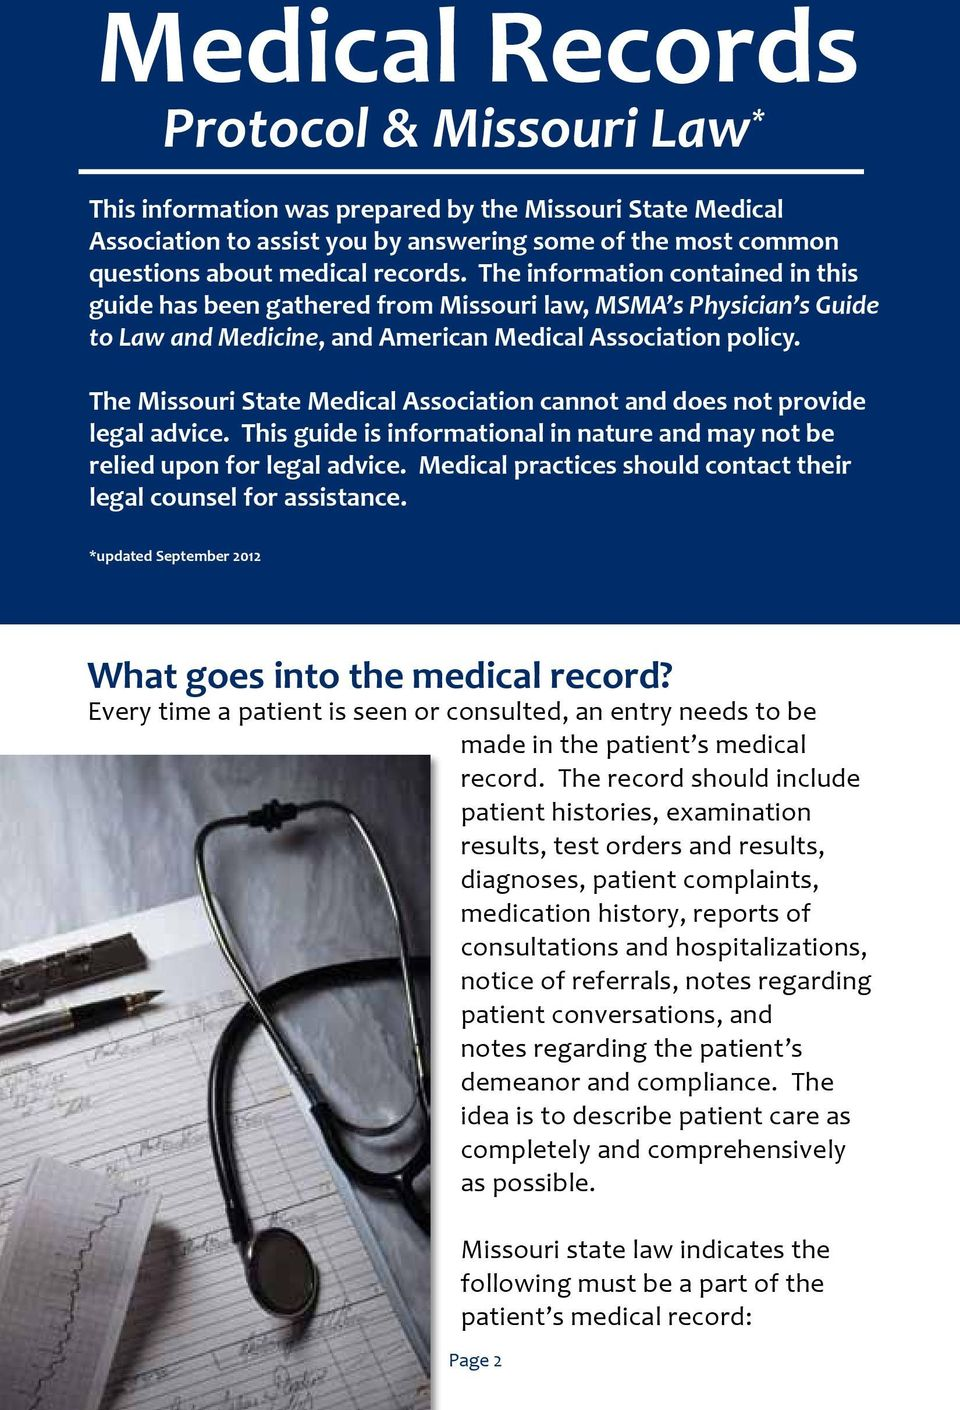 The Missouri State Medical Association cannot and does not provide legal advice. This guide is informational in nature and may not be relied upon for legal advice.